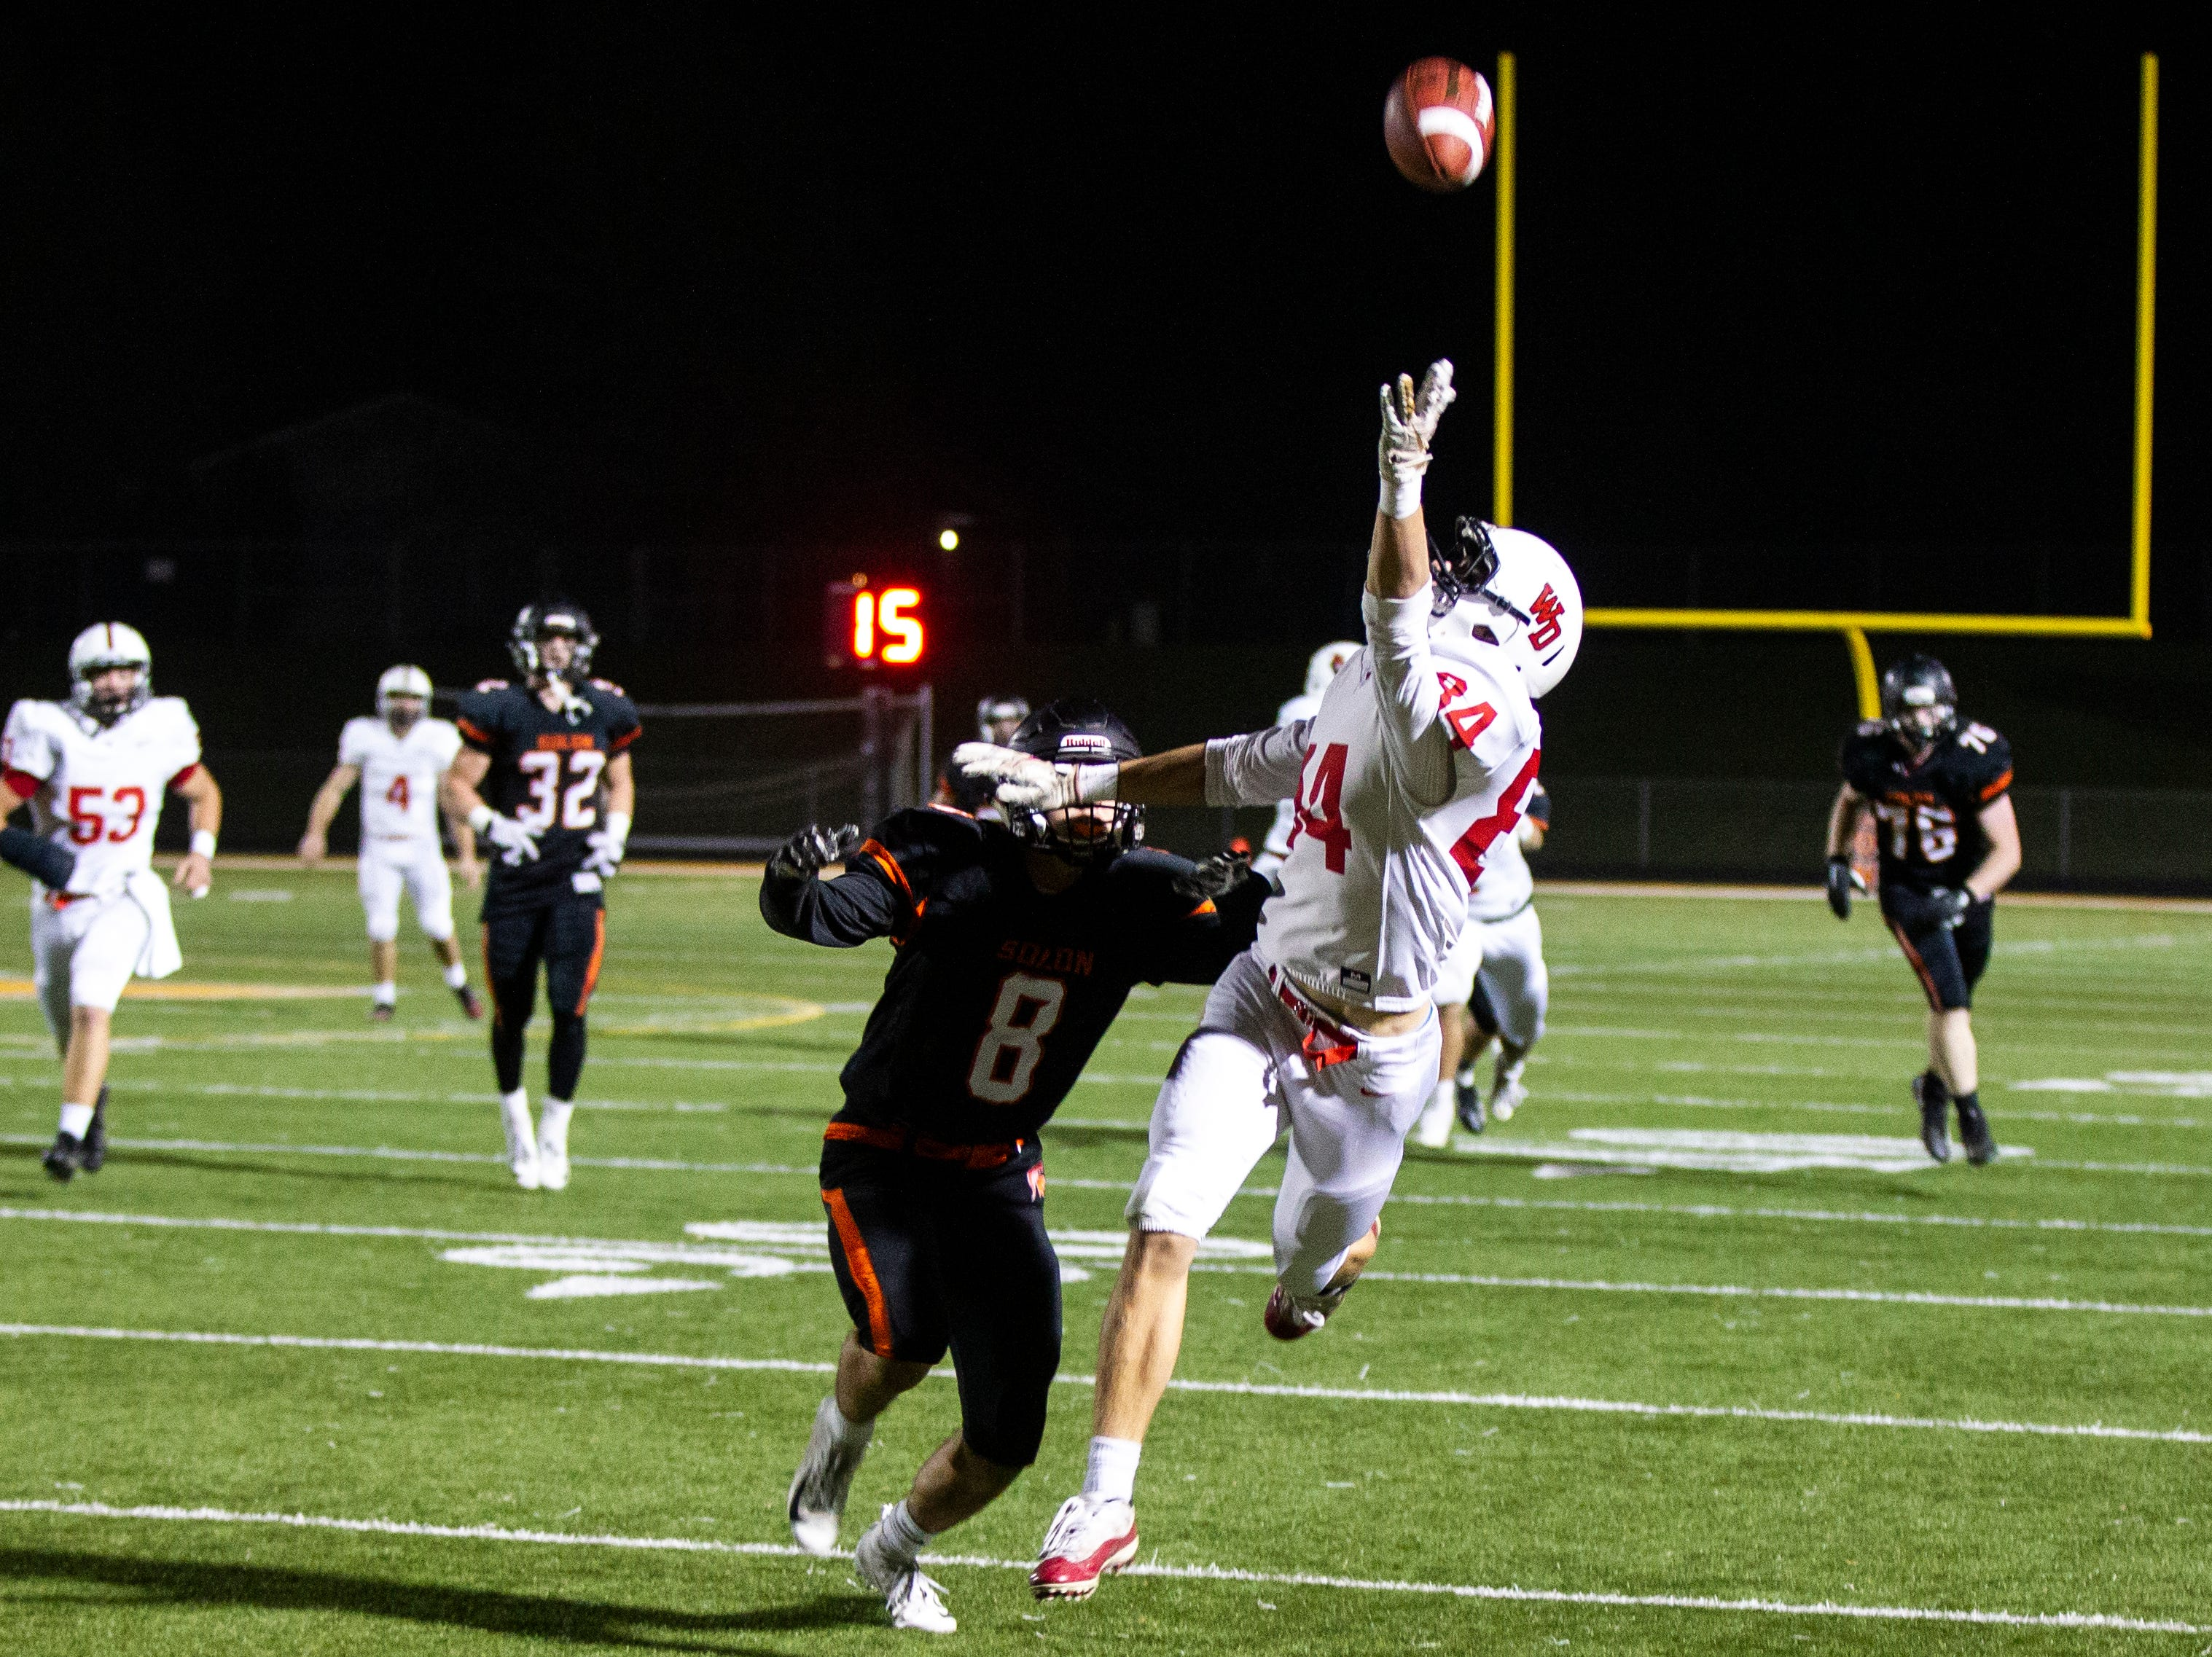 Western Dubuque's Drake George (34) reaches for a ball while being covered by Solon's Jackson Pipolo (8) during a Class 3A varsity first round playoff football game on Friday, Oct. 26, 2018, at Spartan Stadium in Solon, Iowa.